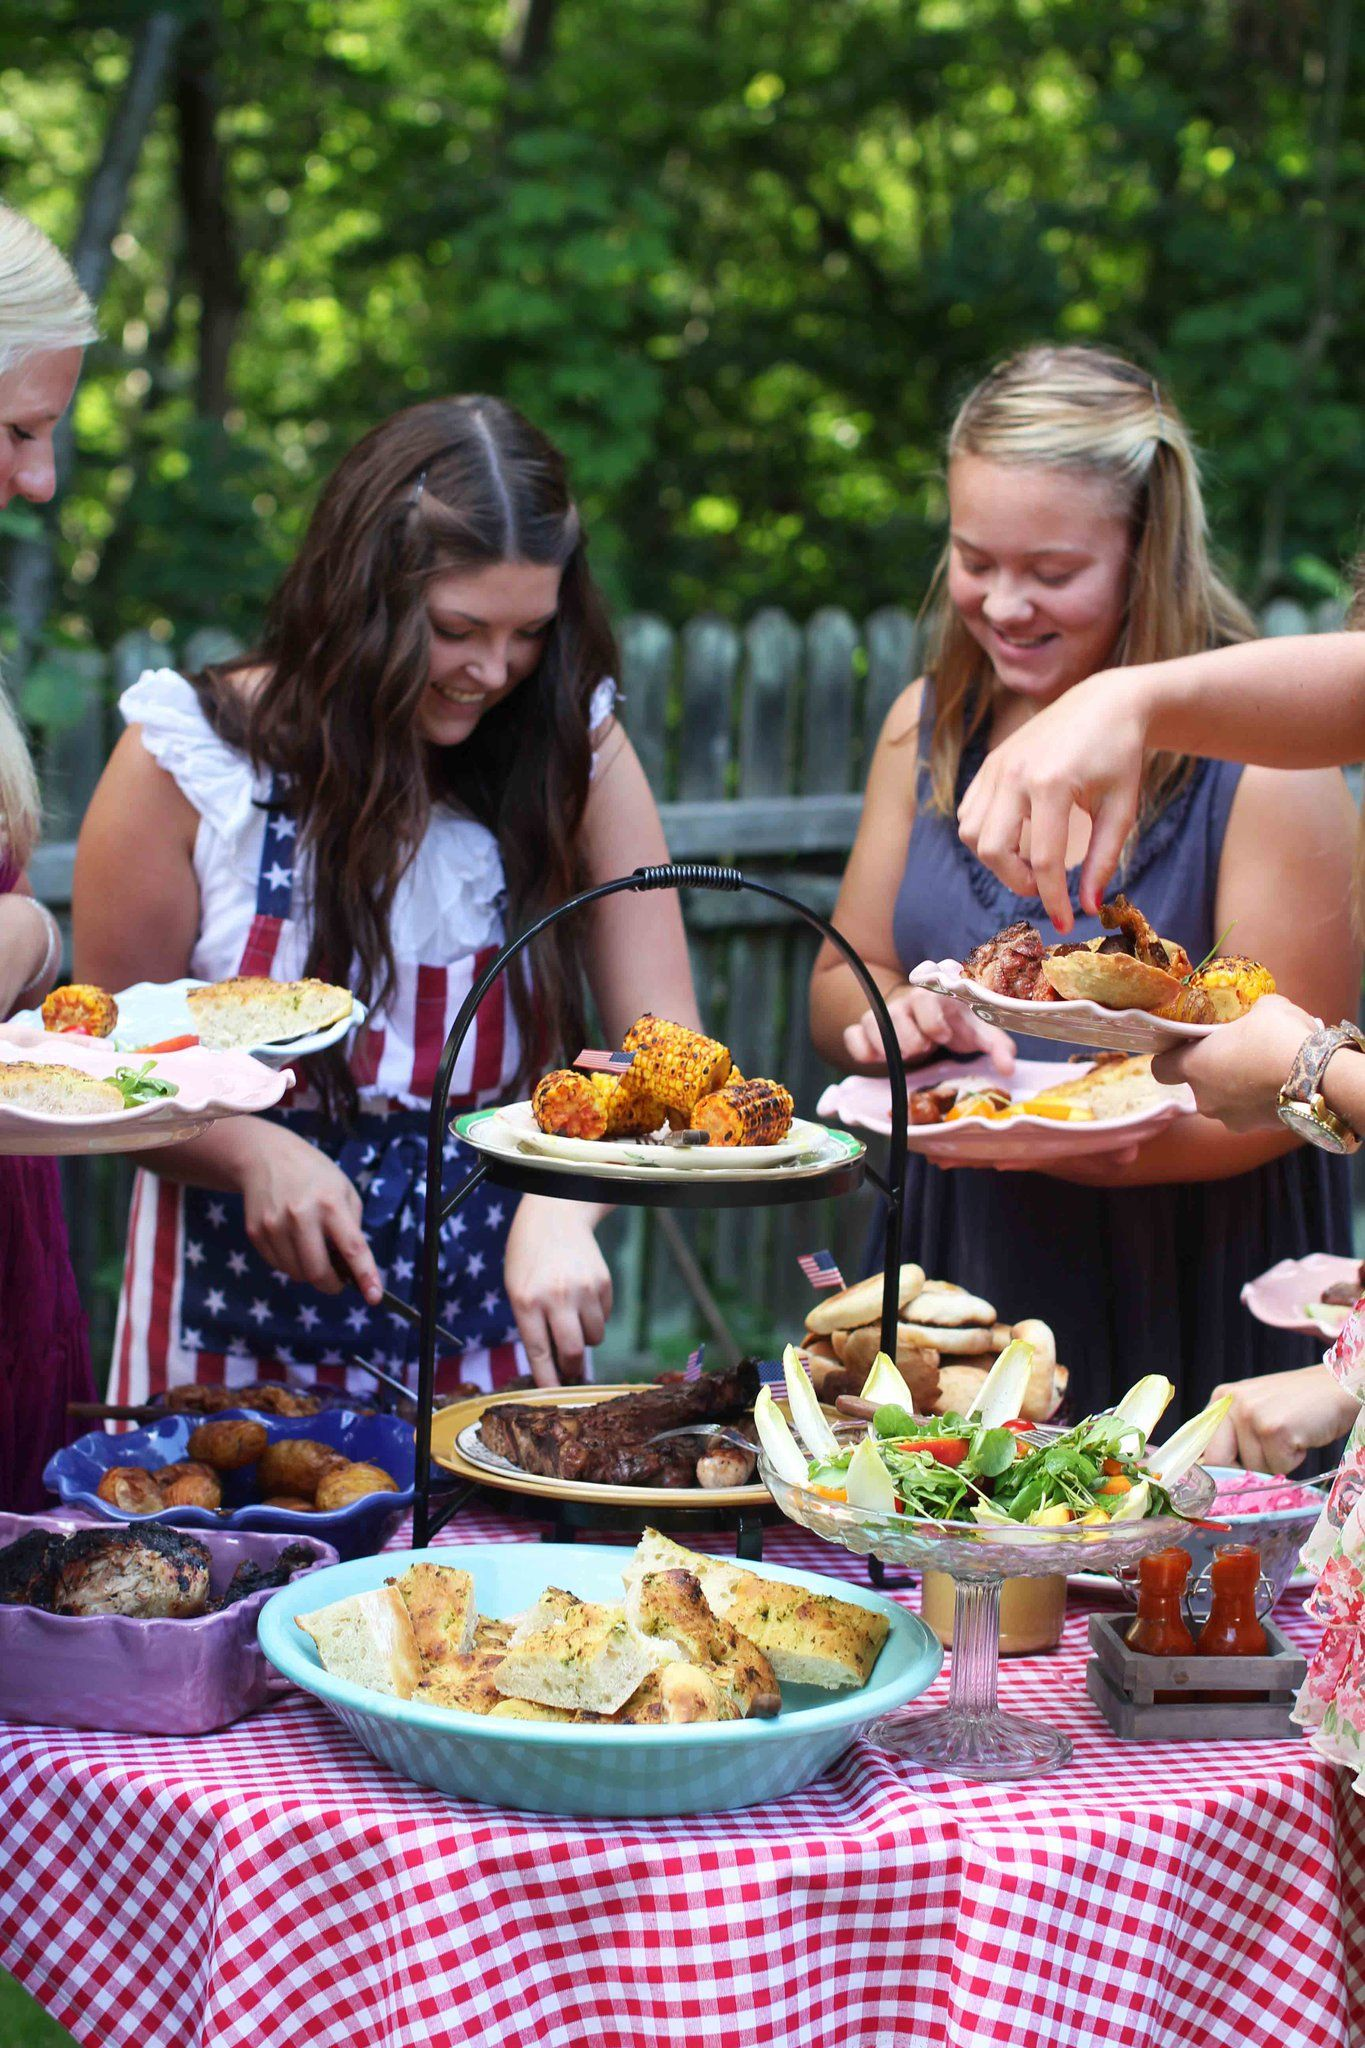 Arrange A Barbecue The Day Before The Wedding So The Guest